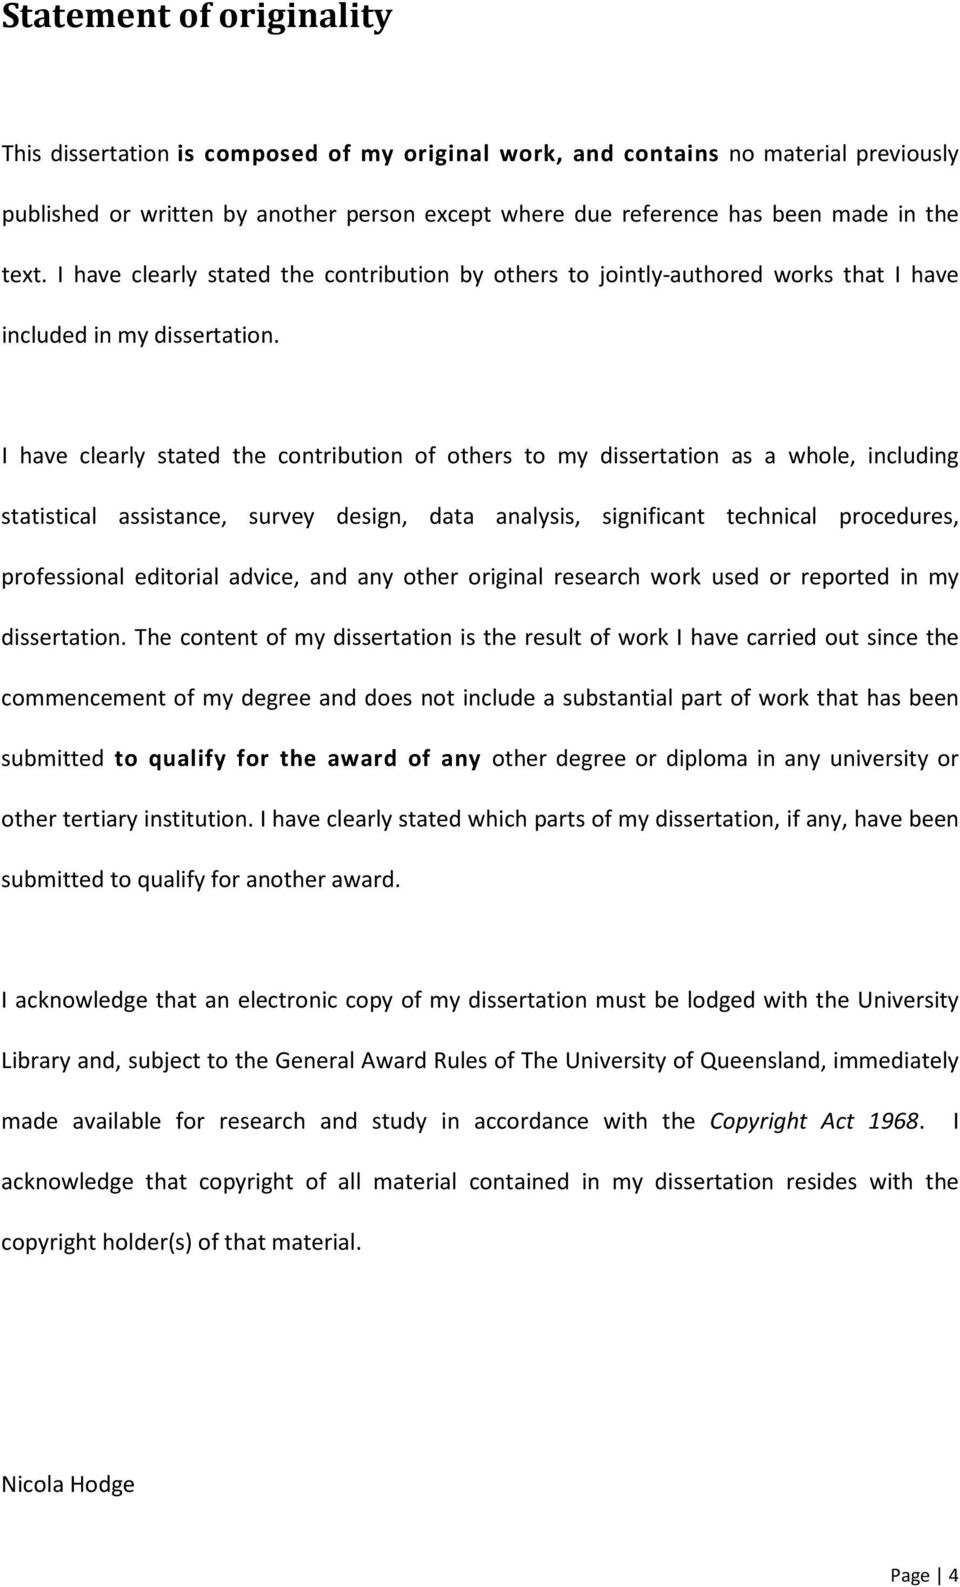 I have clearly stated the contribution of others to my dissertation as a whole, including statistical assistance, survey design, data analysis, significant technical procedures, professional